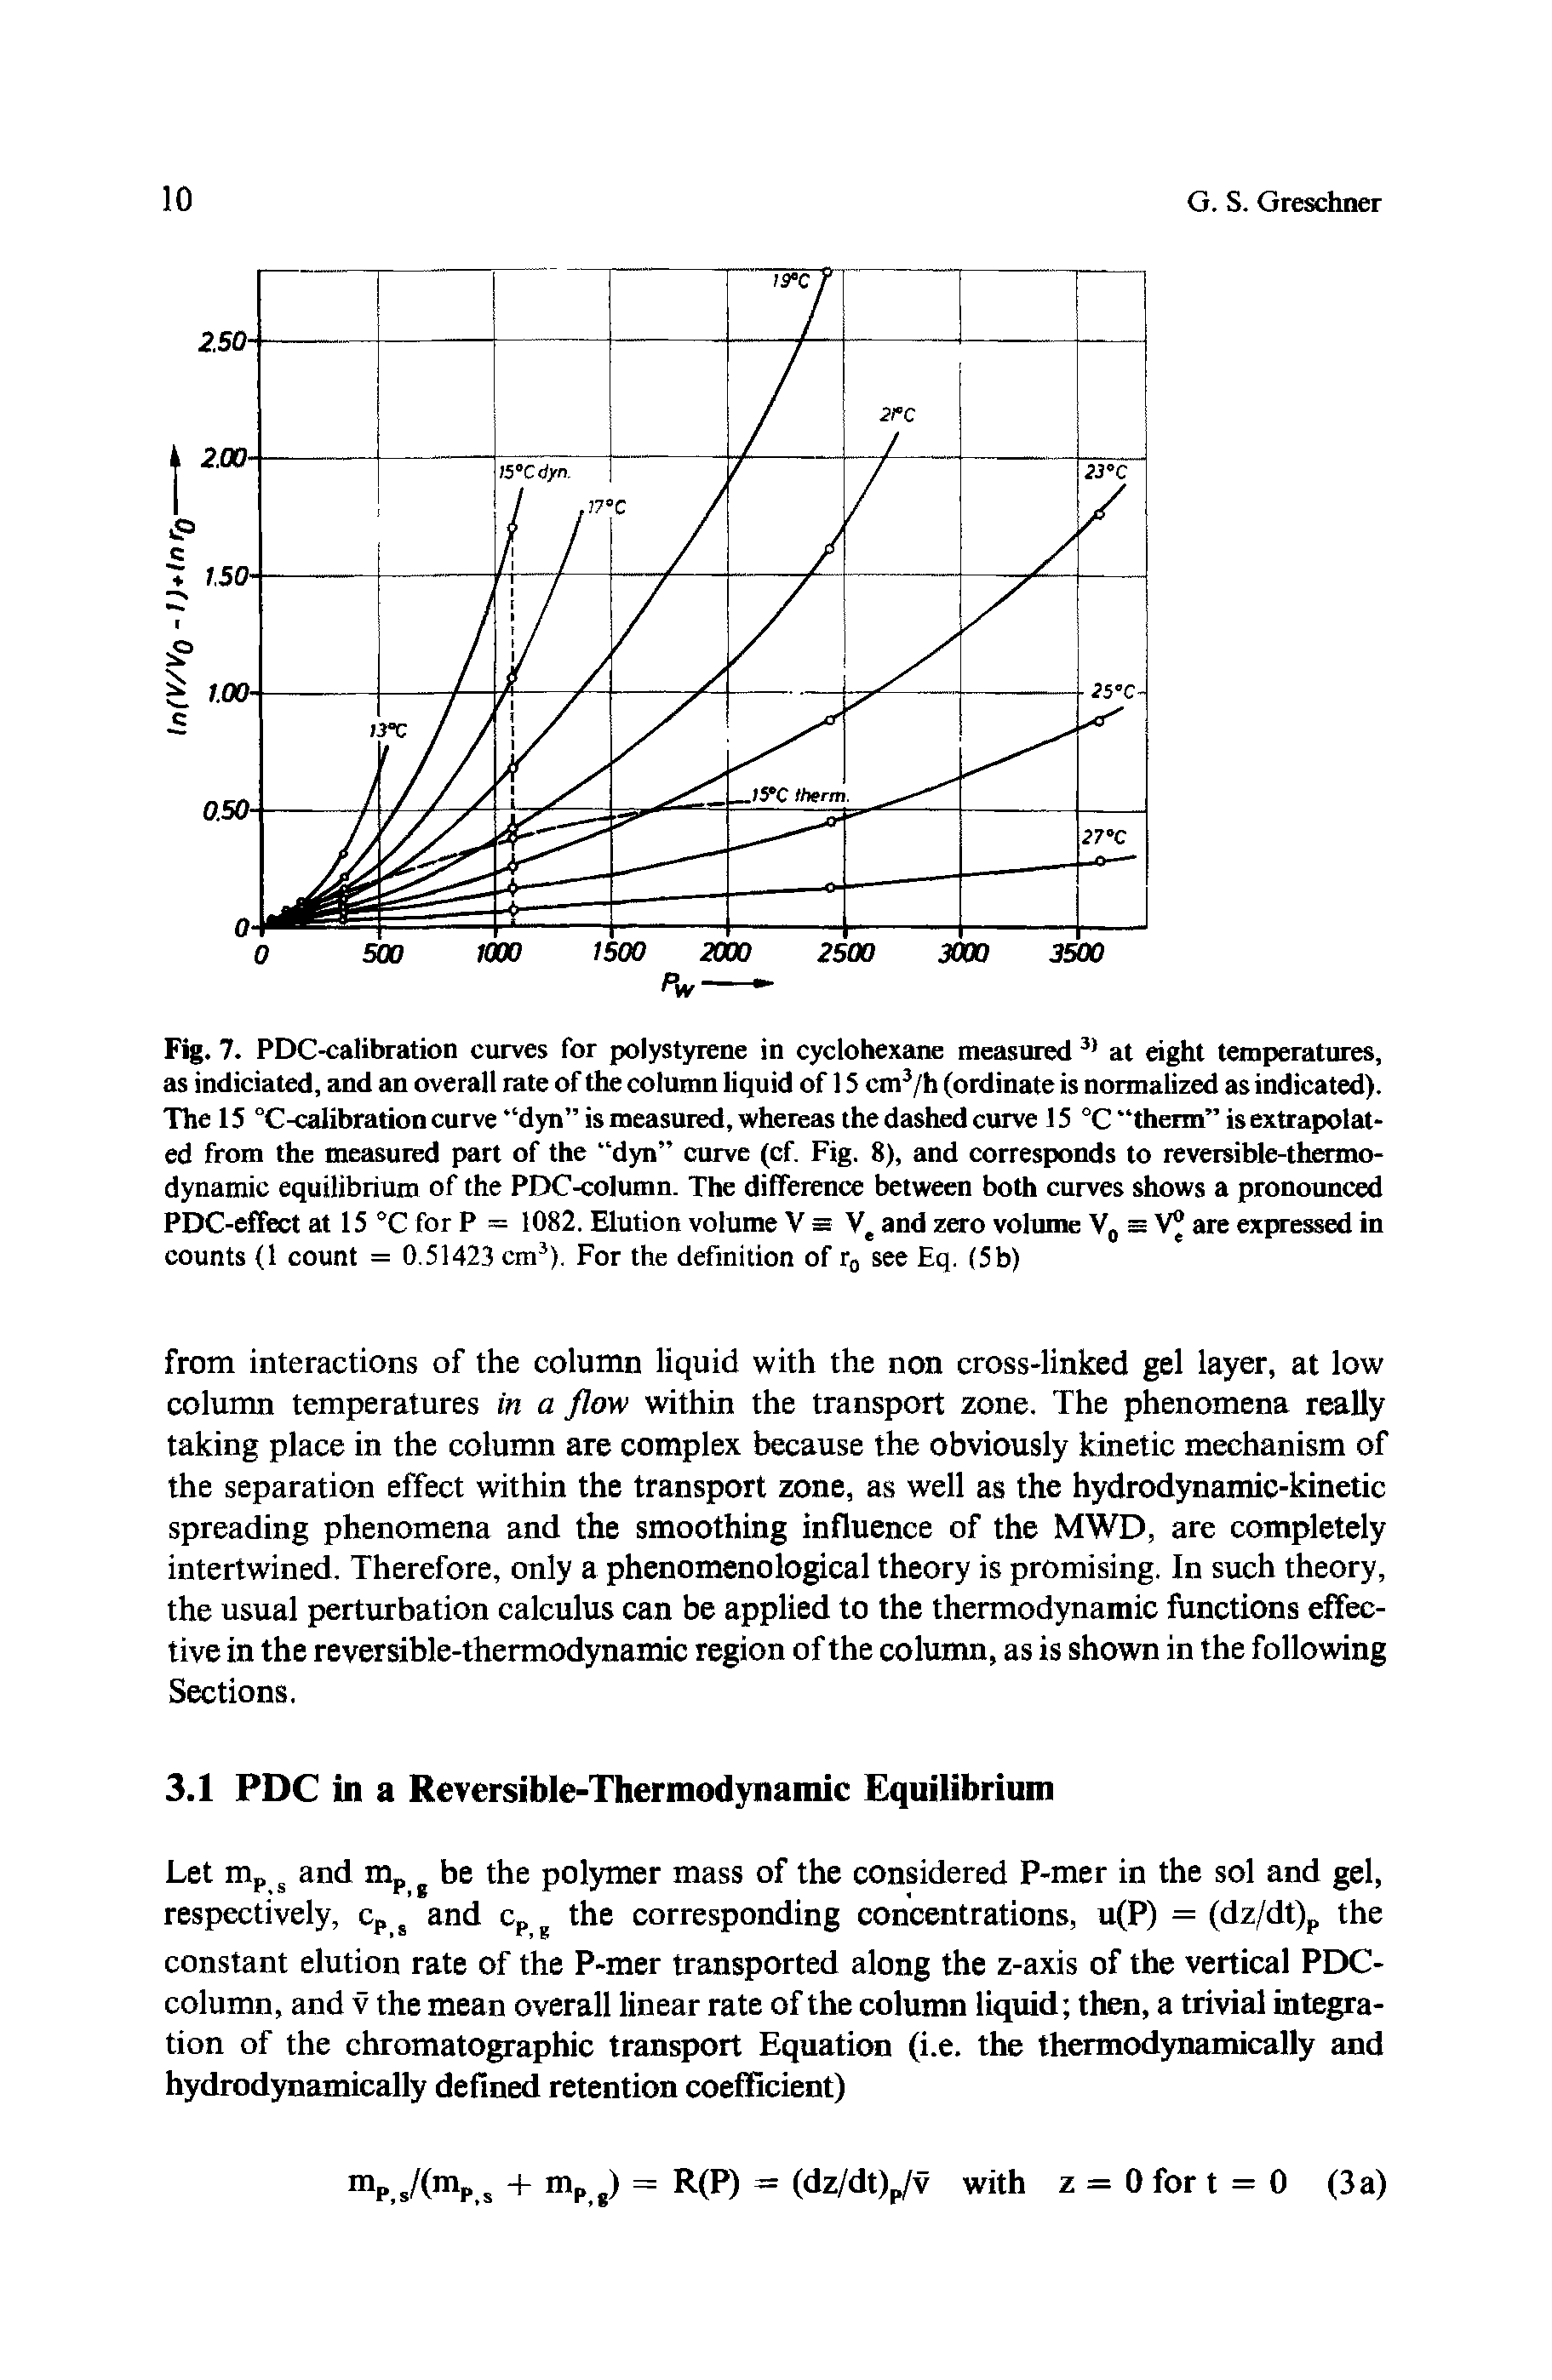 Fig. 7. PDC-calibration curves for polystyrene in cyclohexane measured 3> at eight temperatures, as indiciated, and an overall rate of the column liquid of 15 cm3/h (ordinate is normalized as indicated). The 15 °C-calibration curve dyn is measured, whereas the dashed curve 15 °C therm is extrapolated from the measured part of the dyn curve (cf. Fig. 8), and corresponds to reversible-thermodynamic equilibrium of the PDC-column. The difference between both curves shows a pronounced PDC-effect at 15 °C for P = 1082. Elution volume V = Ve and zero volume V0 = are expressed in counts (1 count = 0.51423 cm3). For the definition of r0 see Eq. (5 b)...